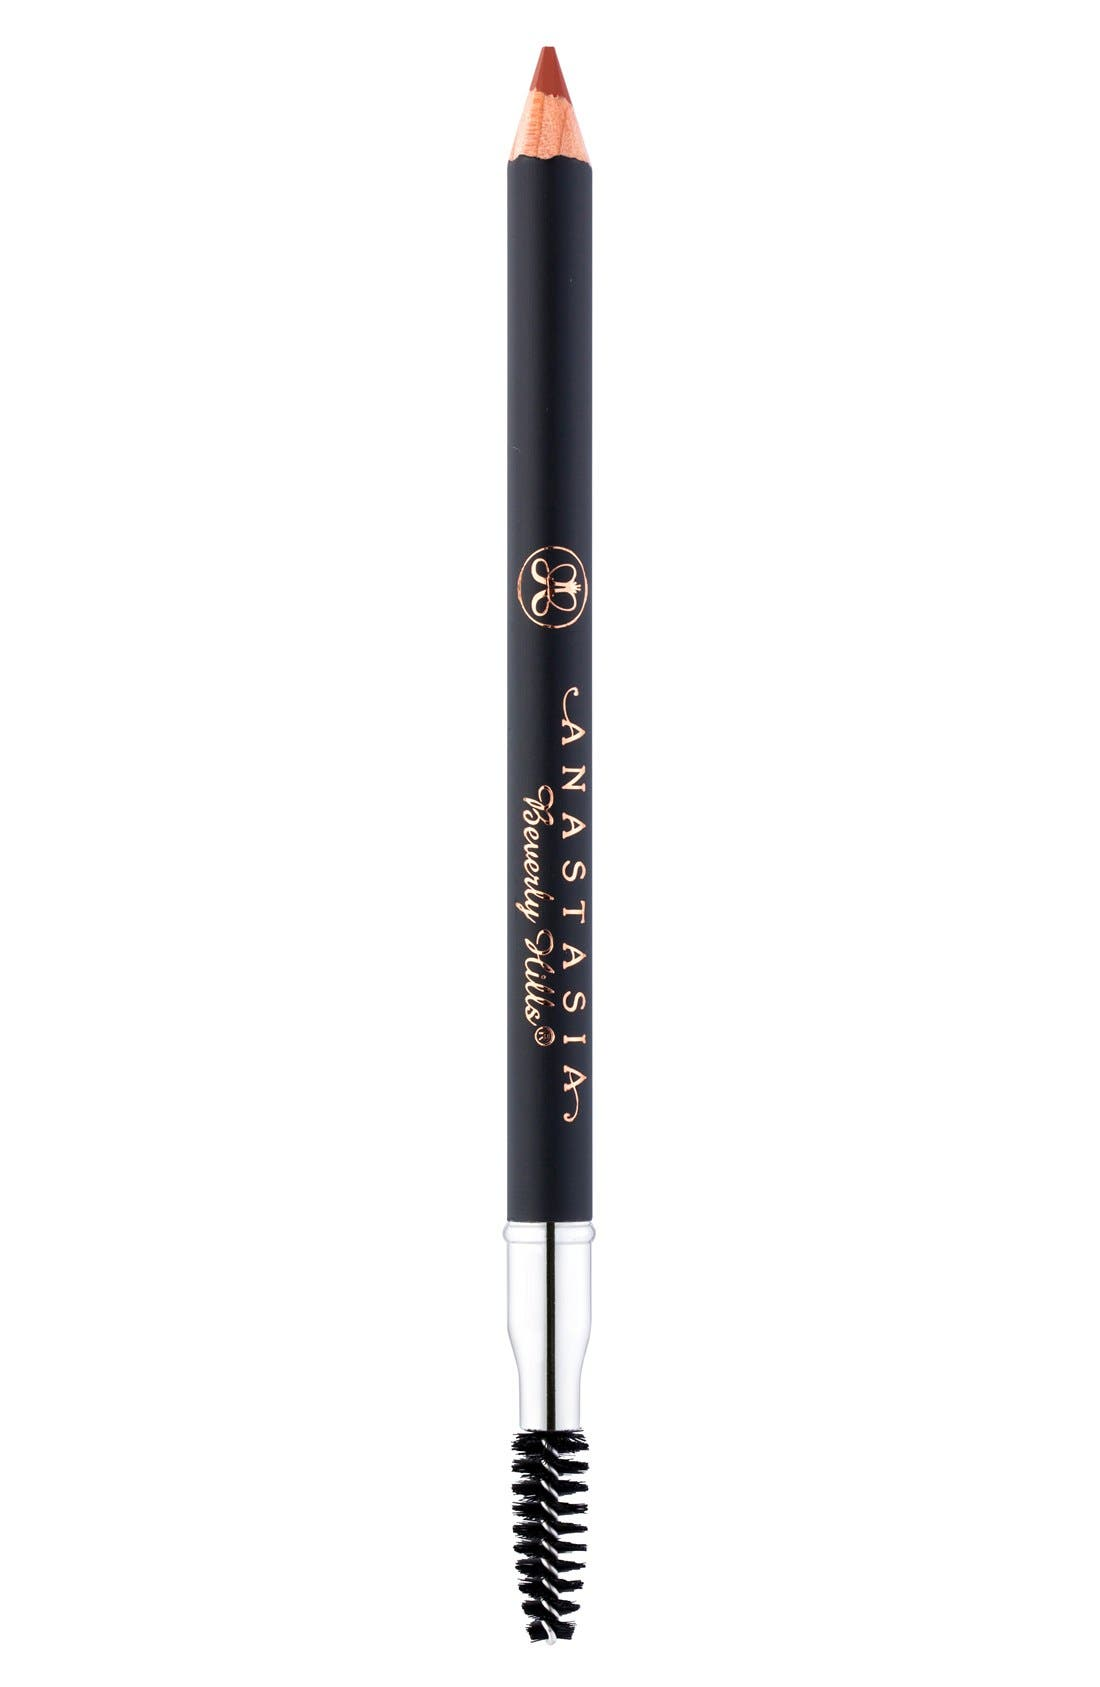 Anastasia Beverly Hills 'Perfect' Brow Pencil